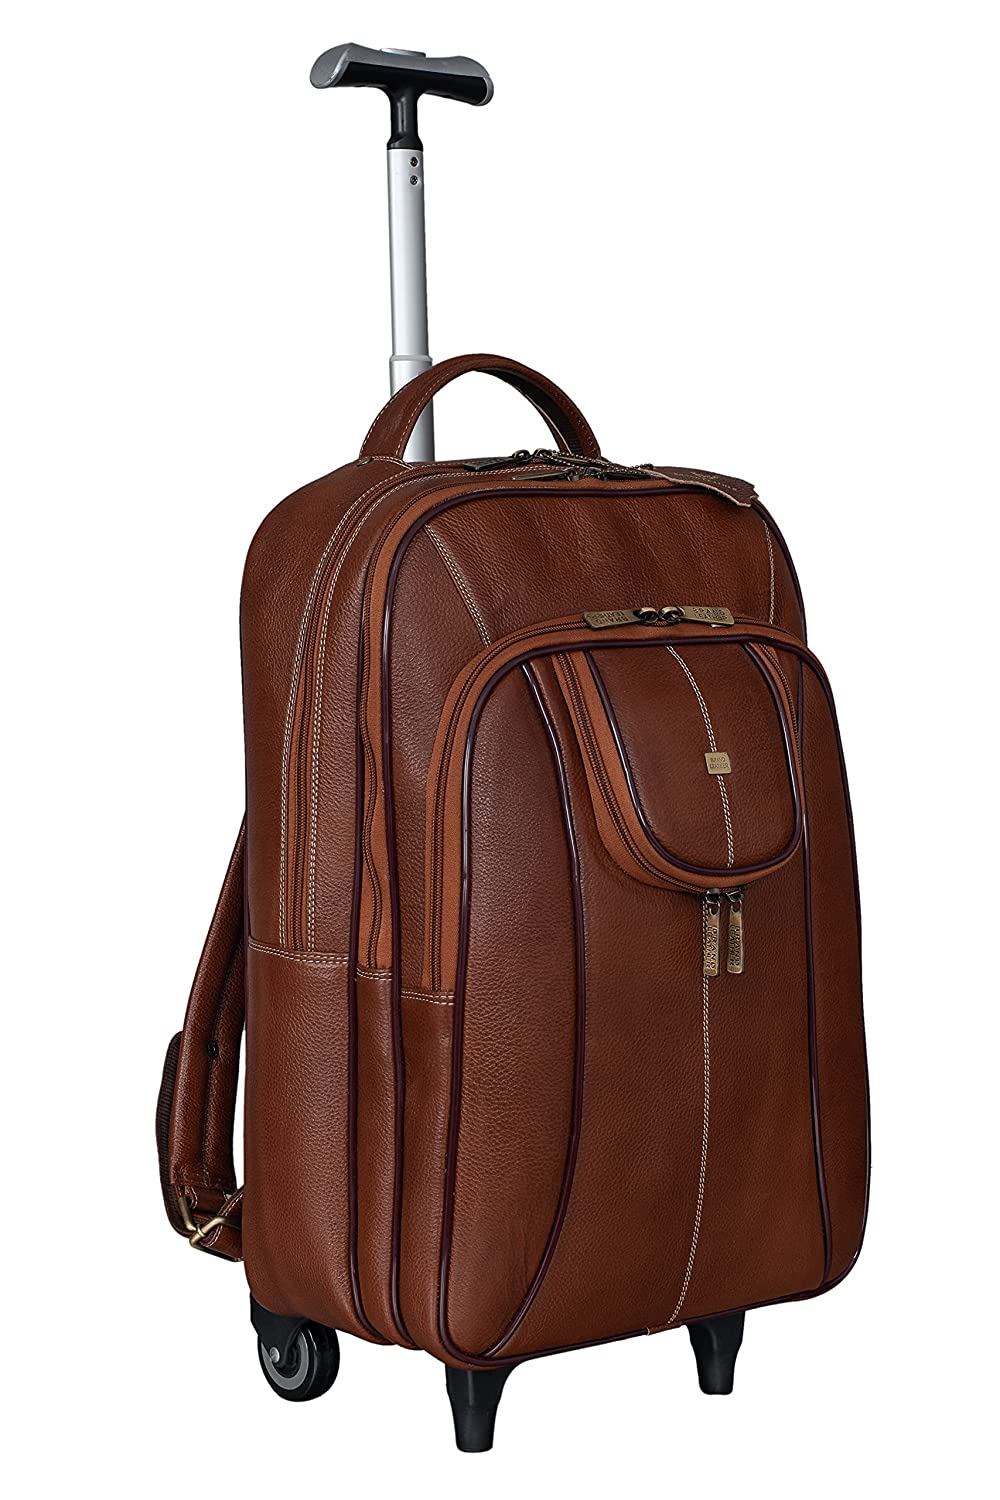 Trolley Bag for Laptop